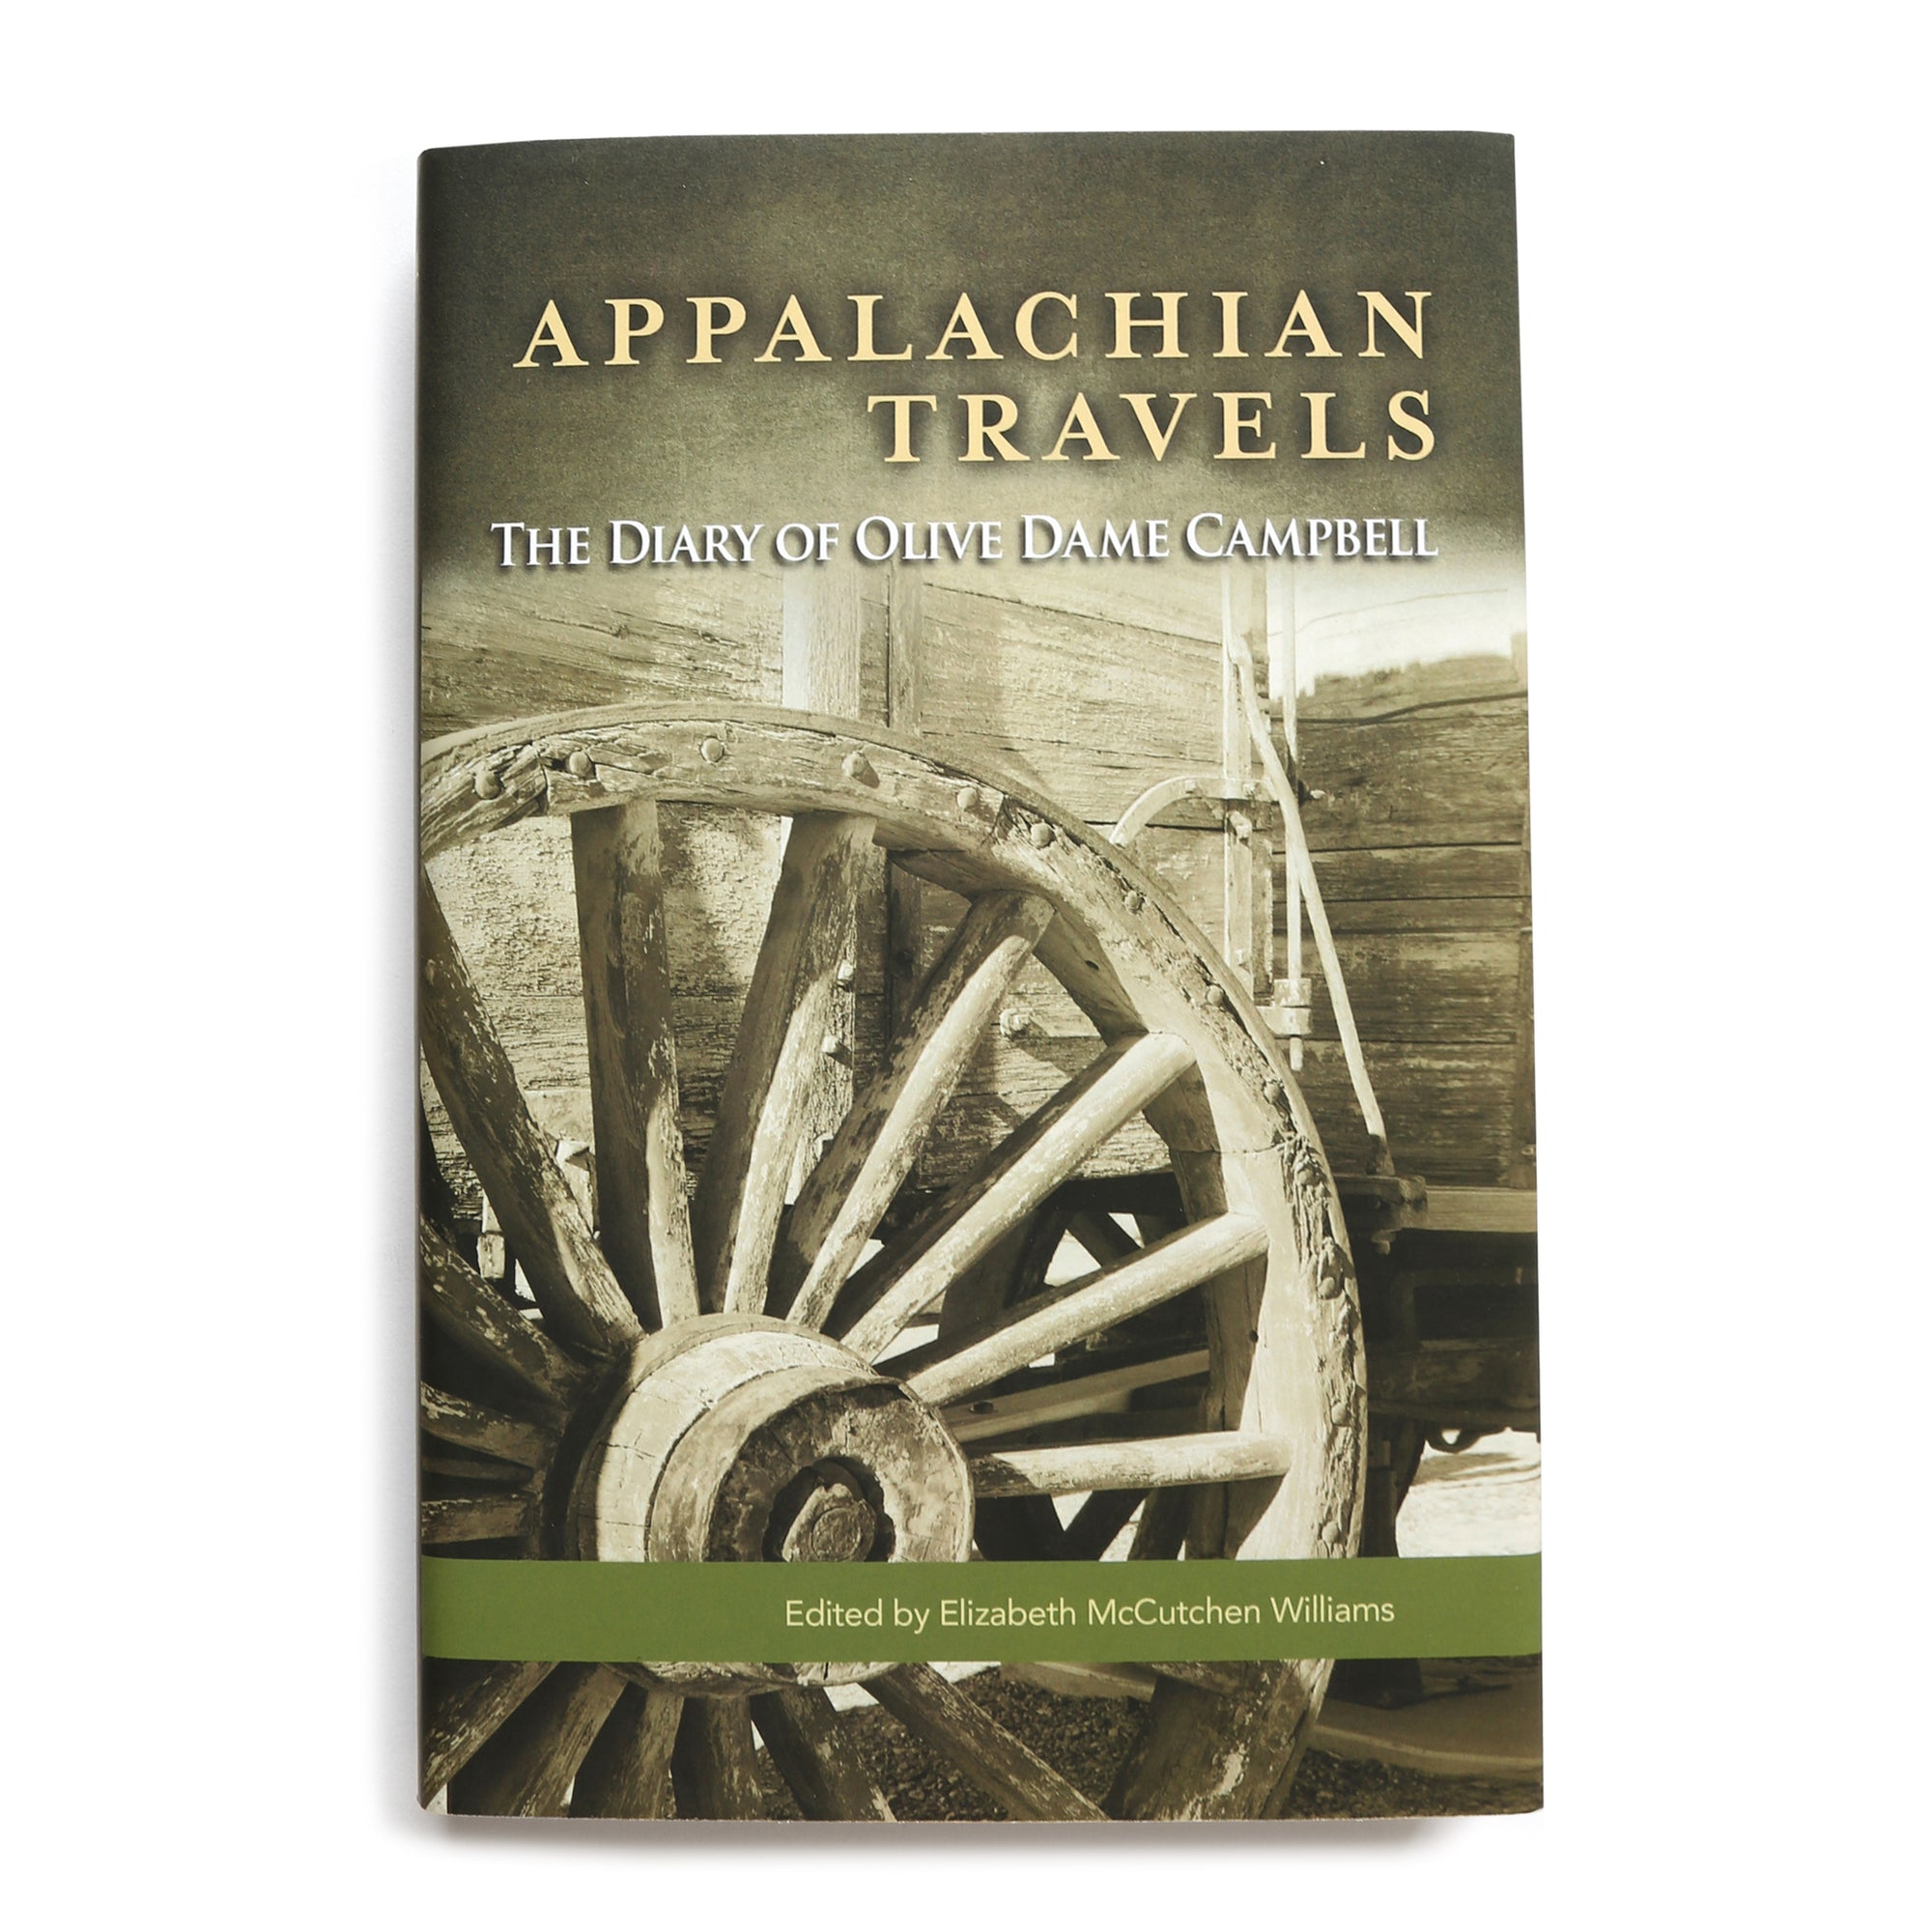 Appalachian Travels